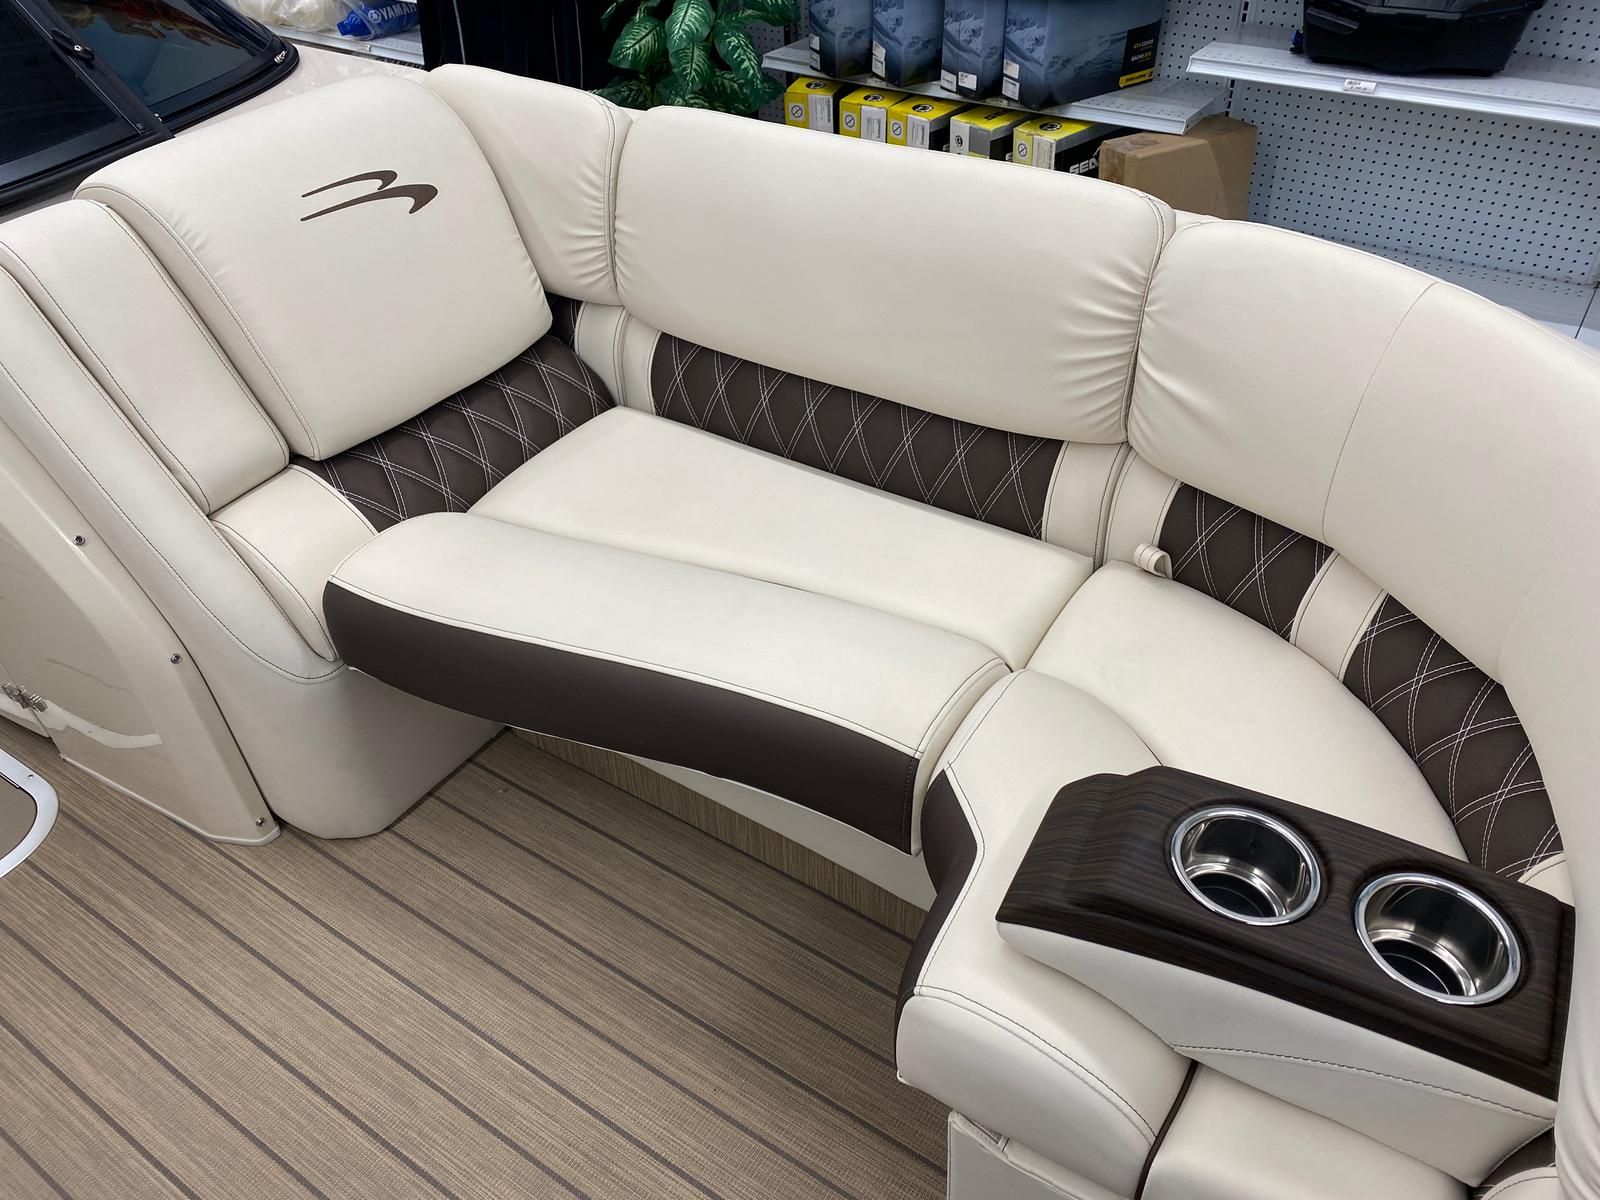 2021 Bennington boat for sale, model of the boat is 23 RSBWA WSHLD DLX Fold Open SP Arch Tri-Toon ESP Package & Image # 9 of 25